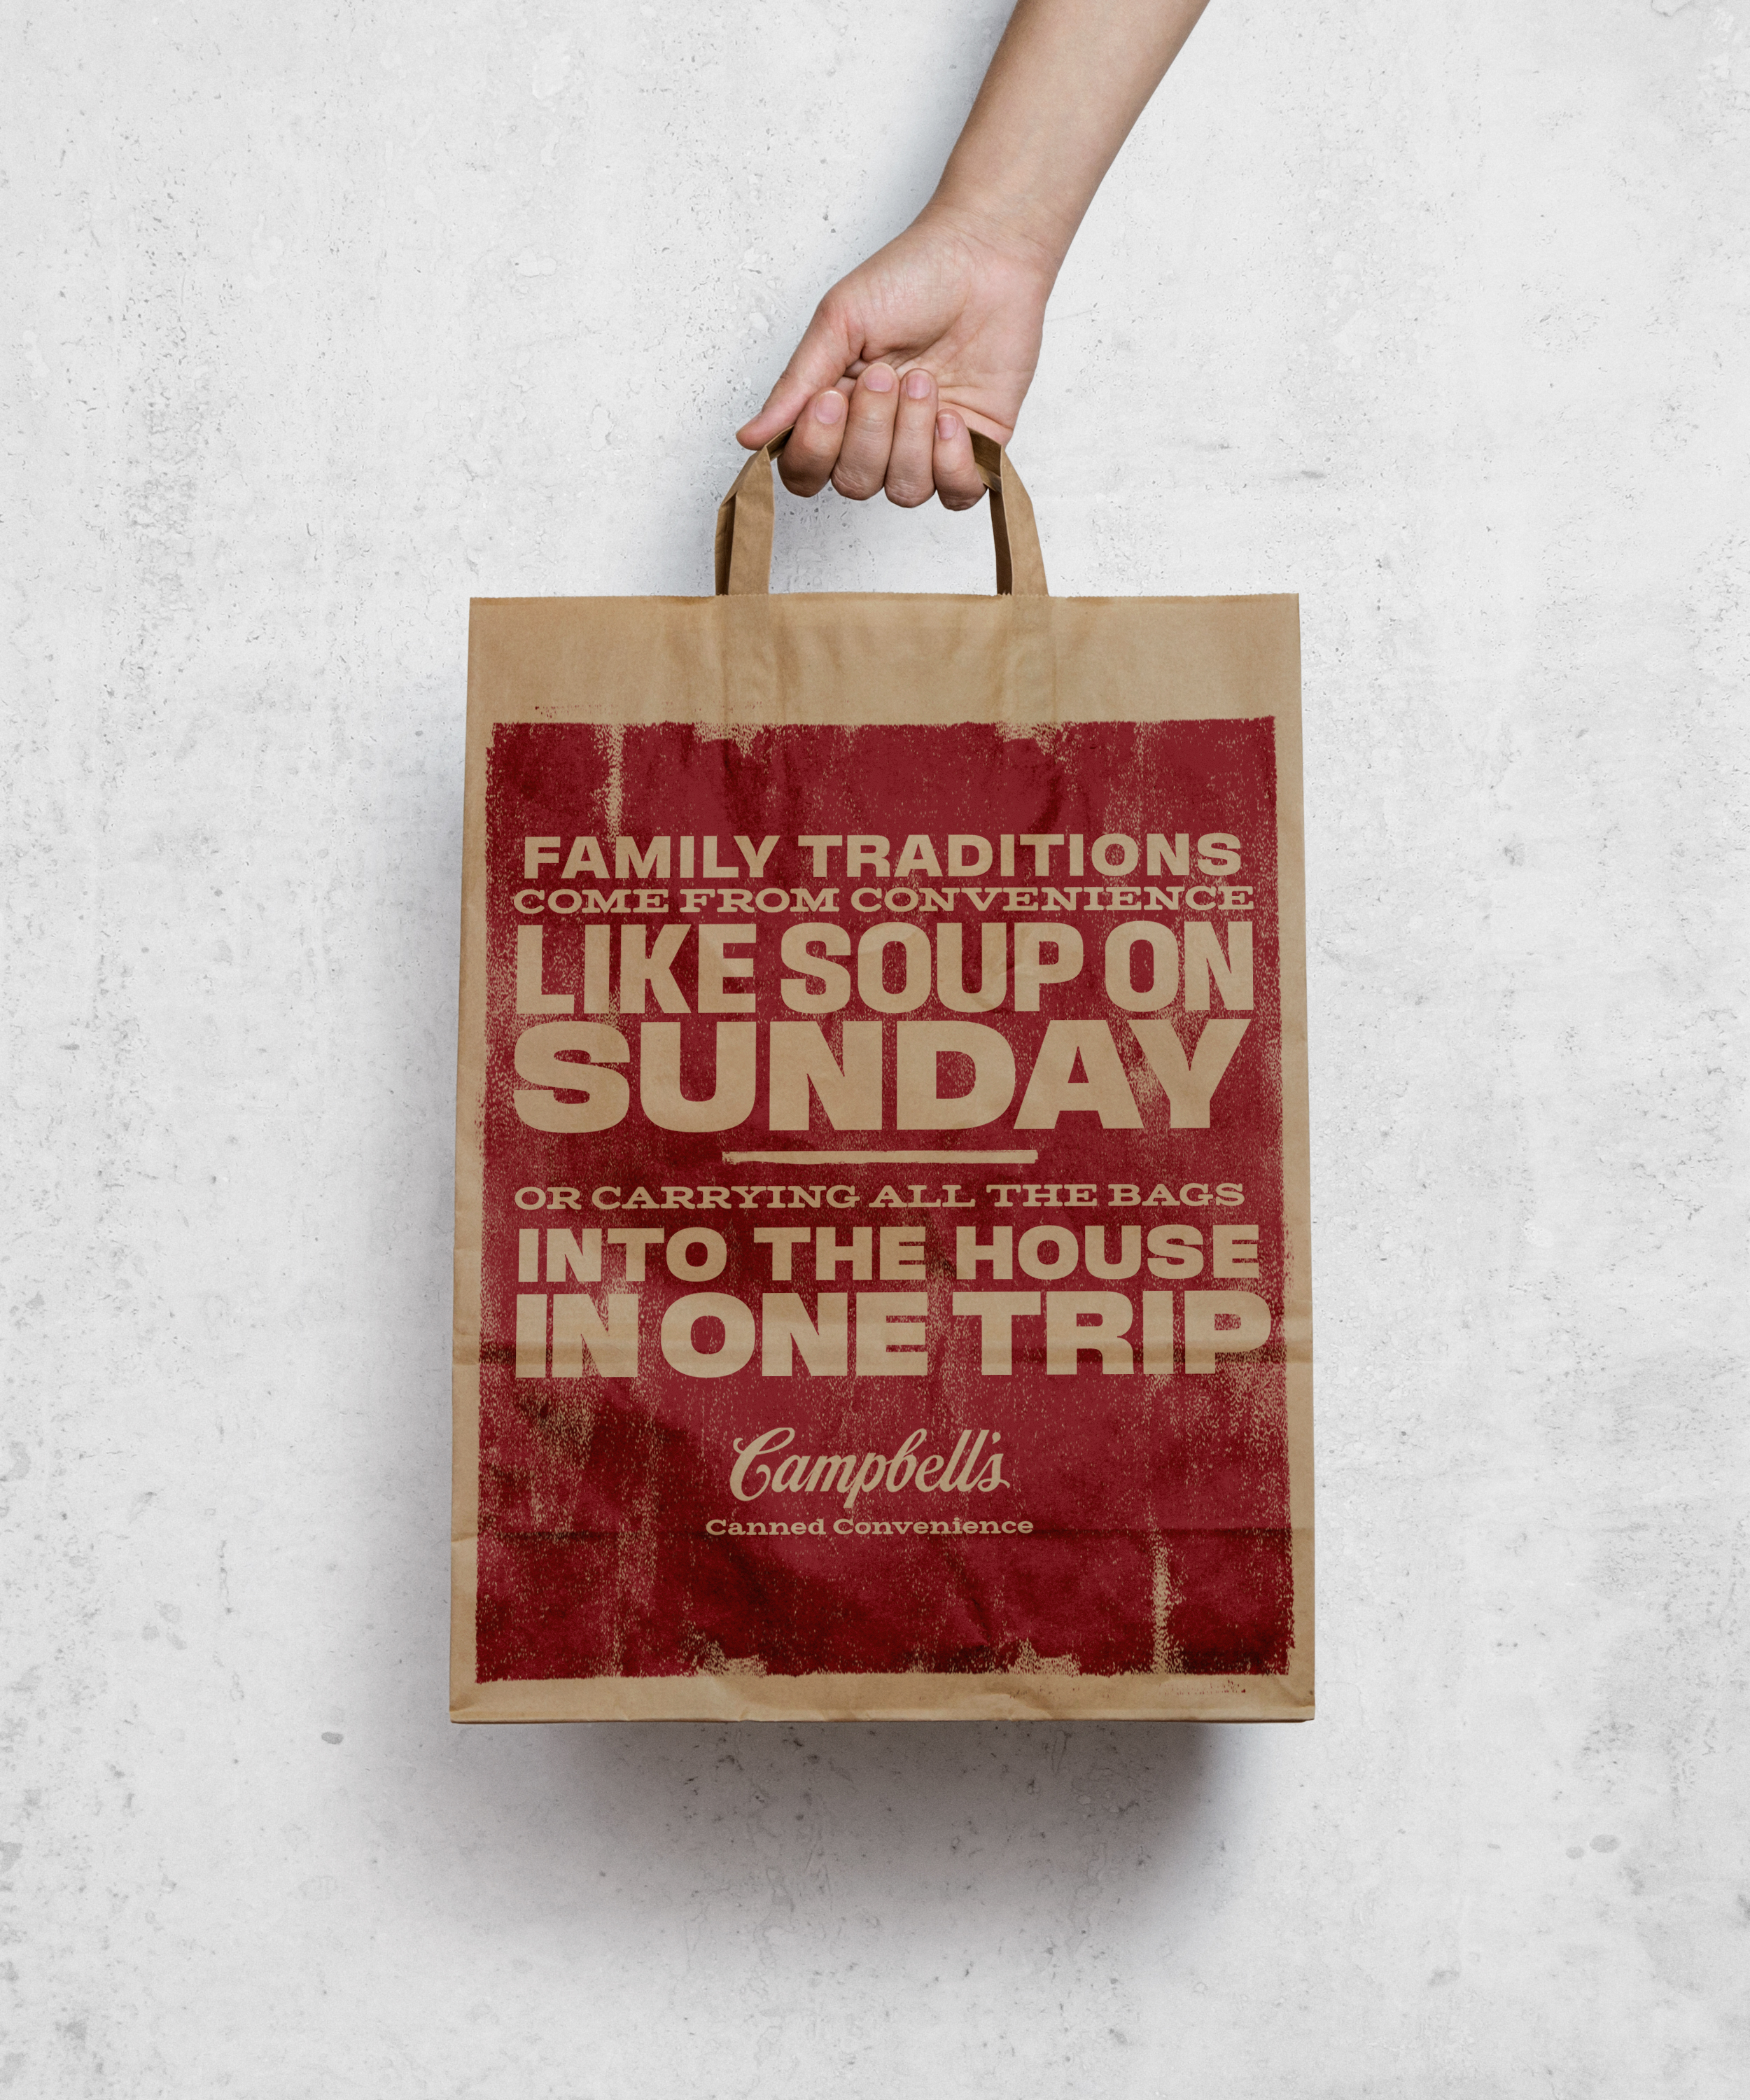 Campbells-BrownPaperBag